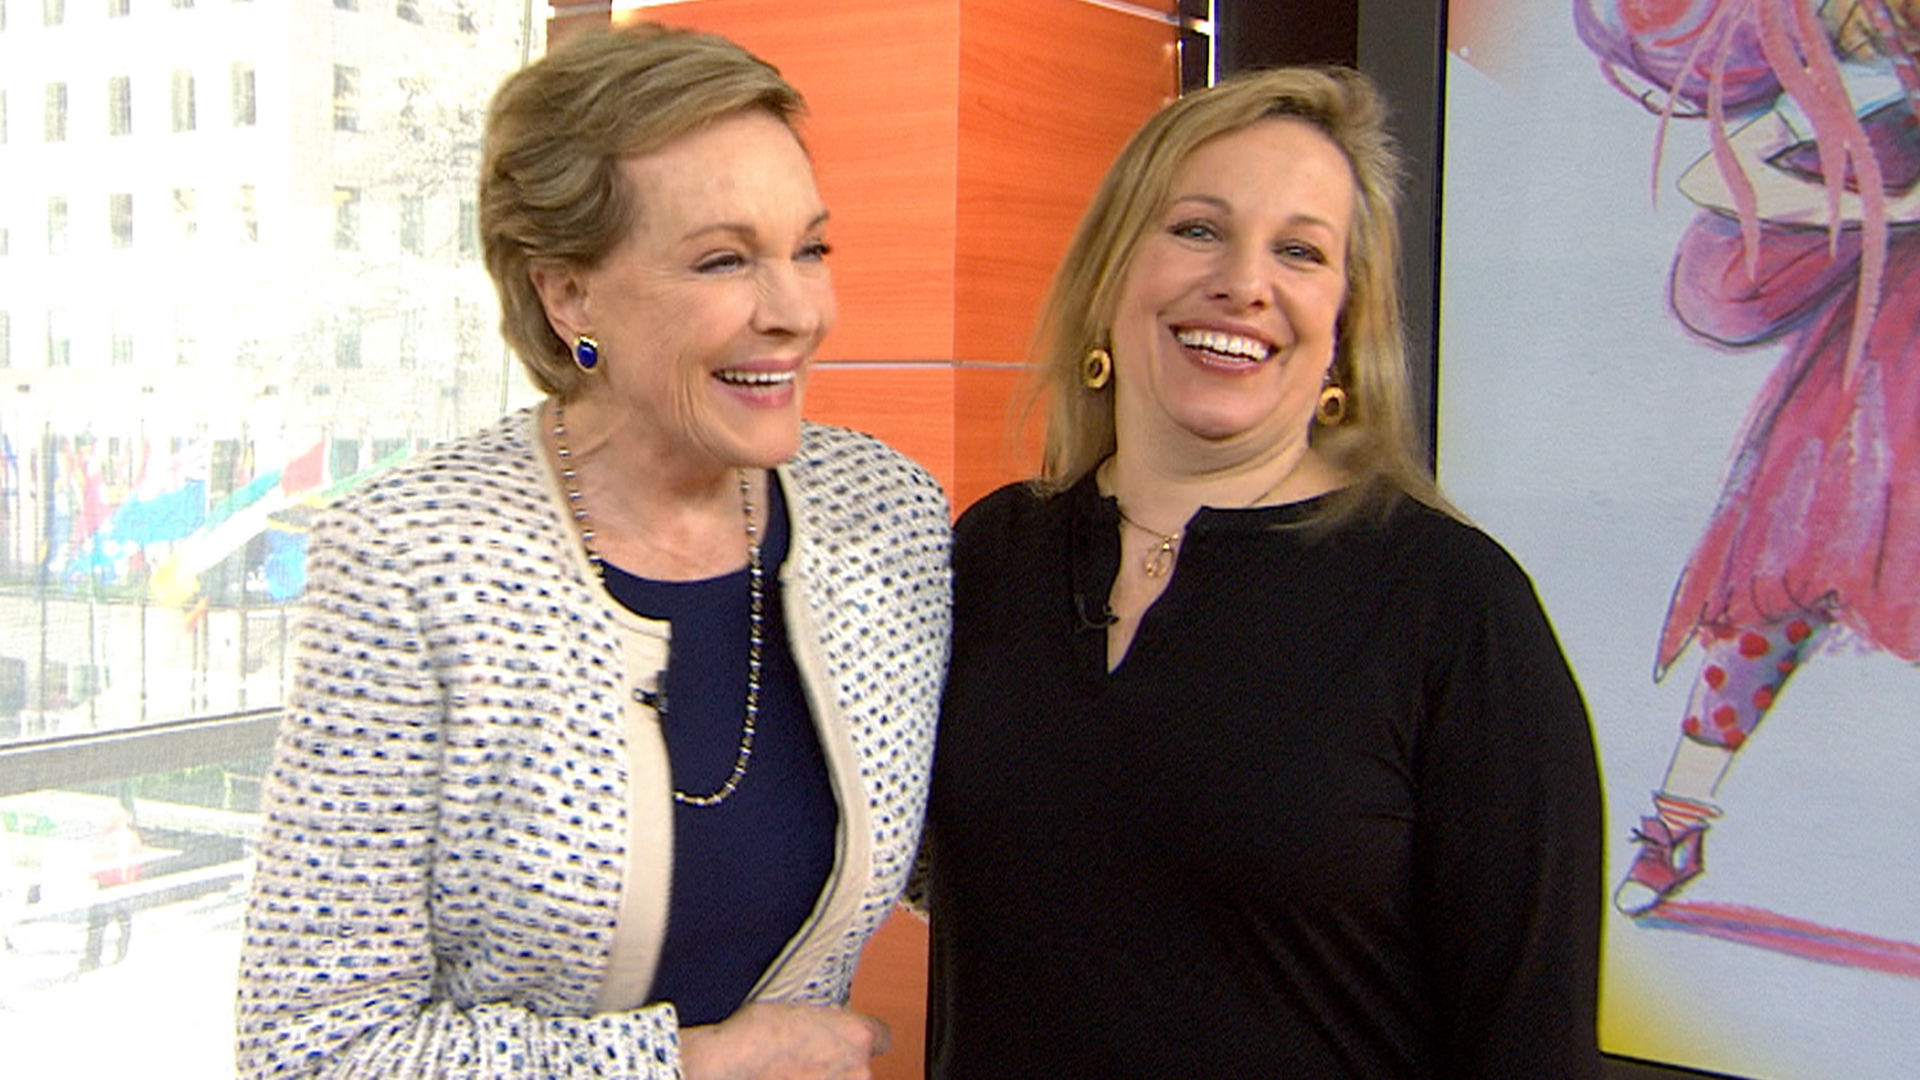 Julie Andrews' daughter: My mom was 'hands on'